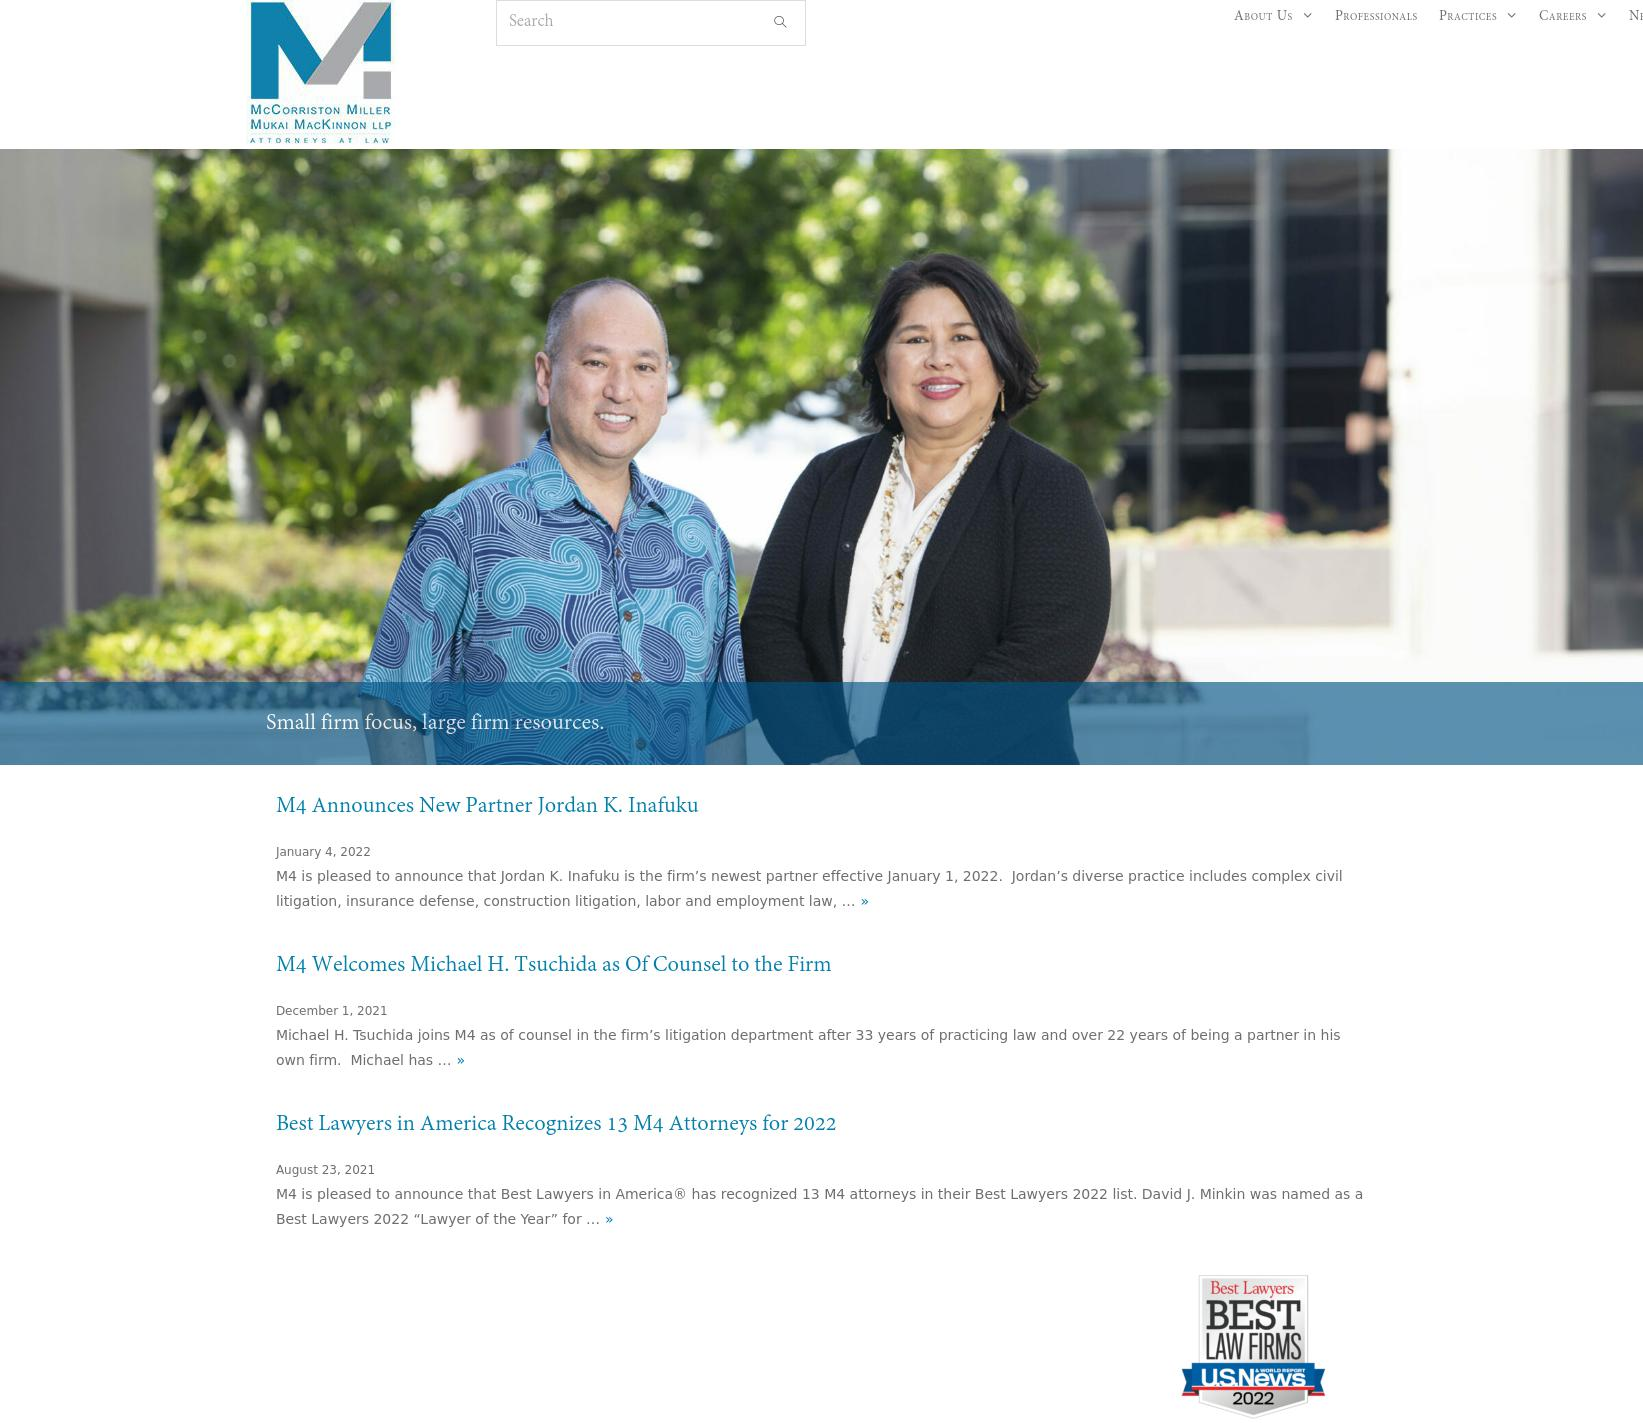 McCorriston Miller Mukai MacKinnon LLP - Honolulu HI Lawyers